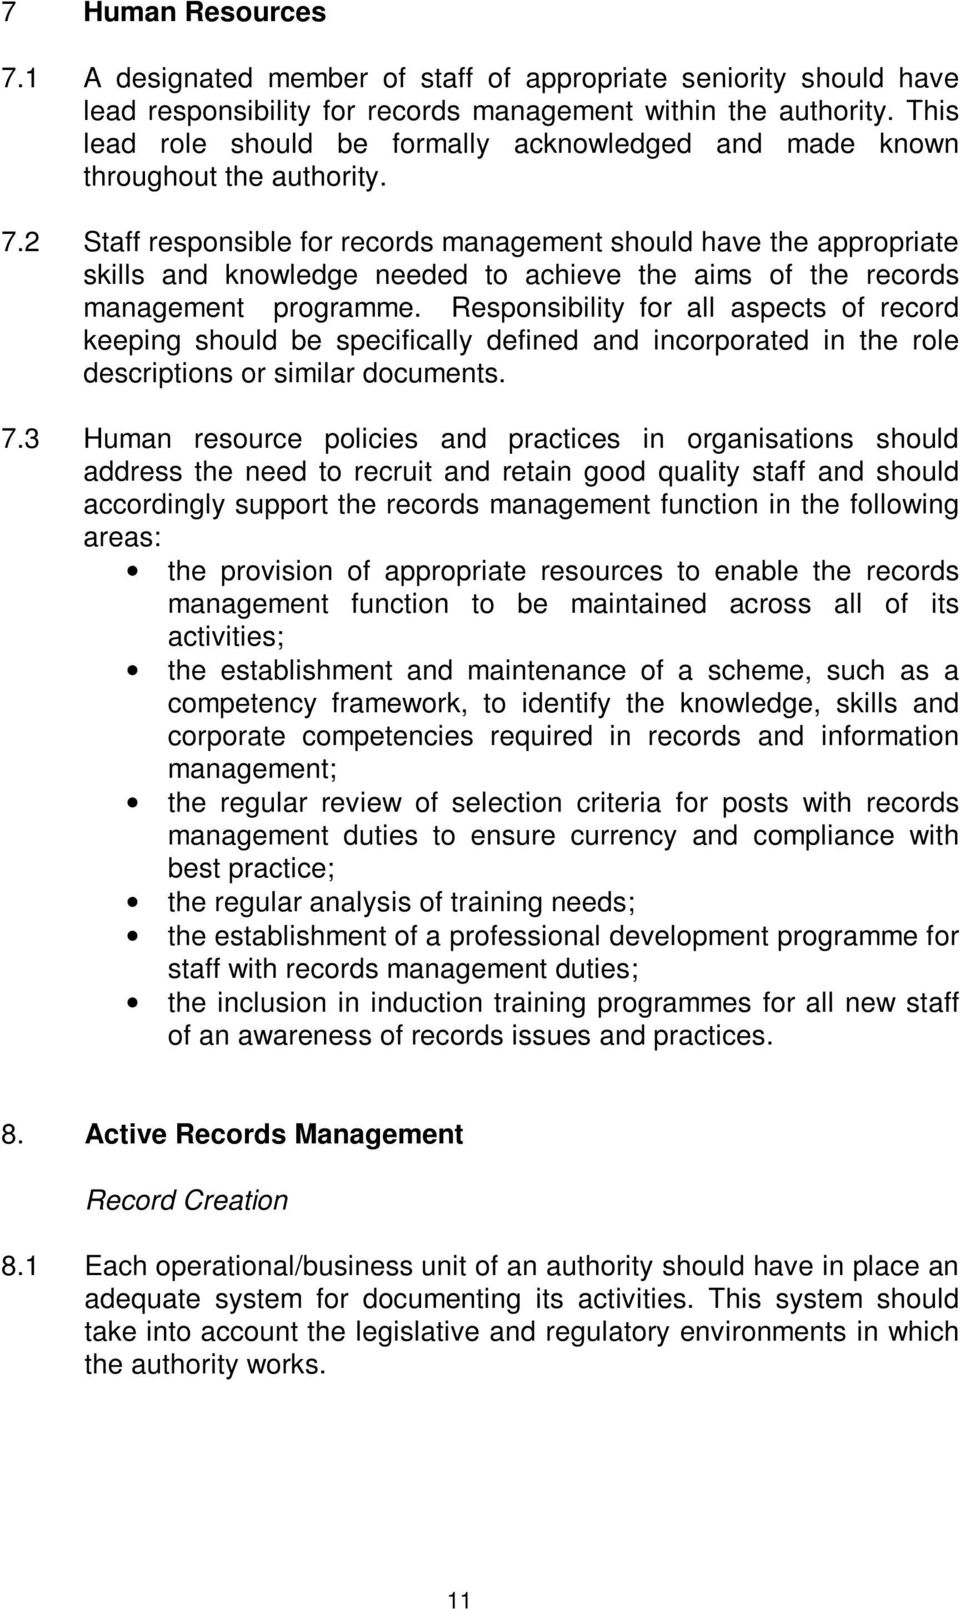 2 Staff responsible for records management should have the appropriate skills and knowledge needed to achieve the aims of the records management programme.